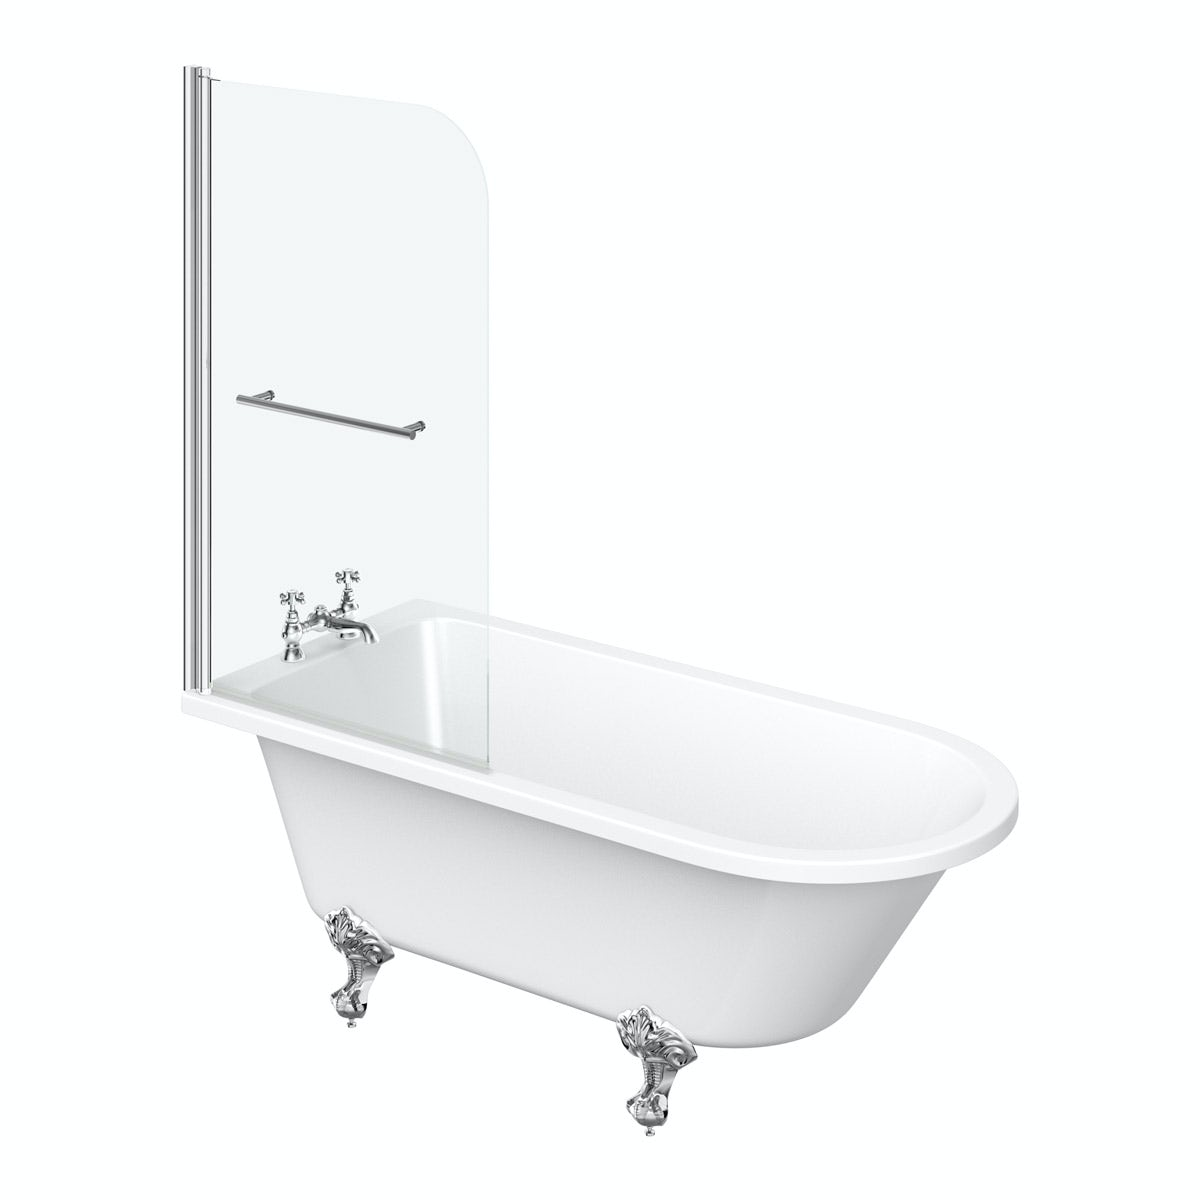 The Bath Co. Dulwich freestanding shower bath and bath screen with rail